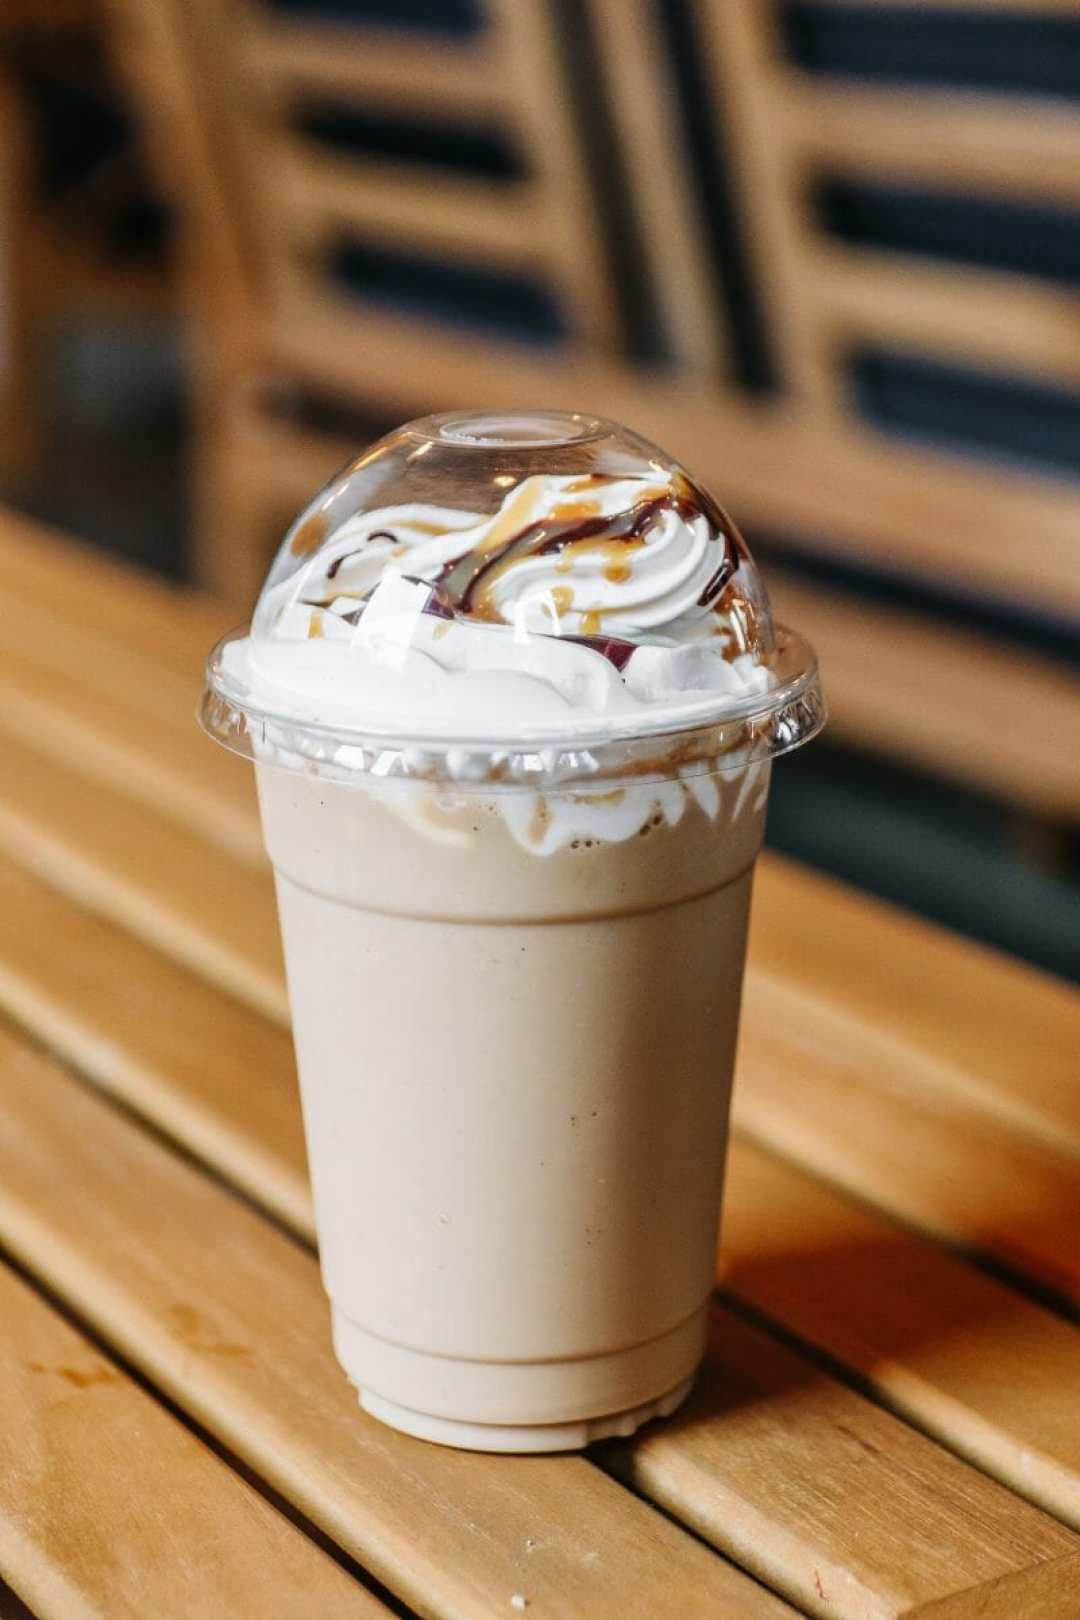 Where To Eat In Russell County, KY Near Lake Cumberland: Reel Java & Creamery at Timber Pointe Resort by JC Phelps of JCP Eats, a Kentucky-based food, travel, and lifestyle blog